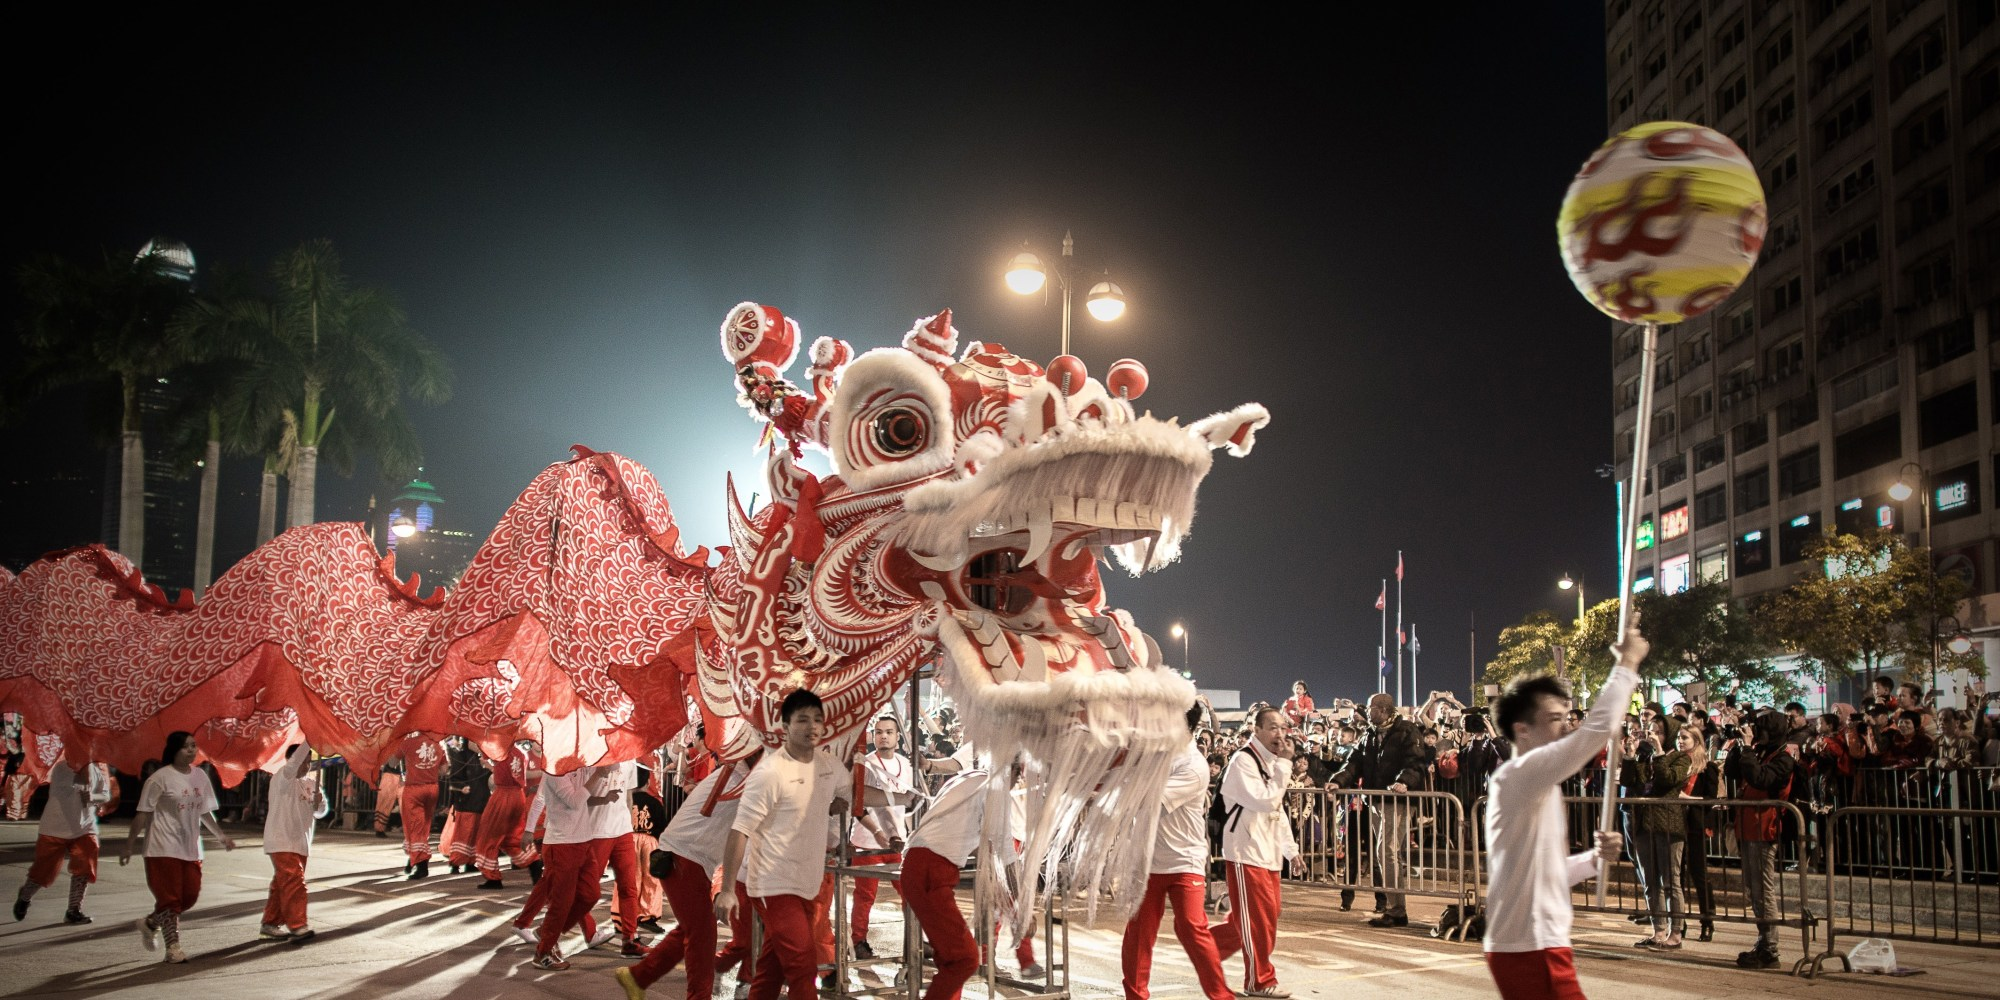 Performers display a dragon dance during a Chinese New Year parade in Hong Kong on January 31, 2014. Chinese communities across Asia have come together to usher in the Year of the Horse. AFP PHOTO/Philippe Lopez (Photo credit should read PHILIPPE LOPEZ/AFP/Getty Images)